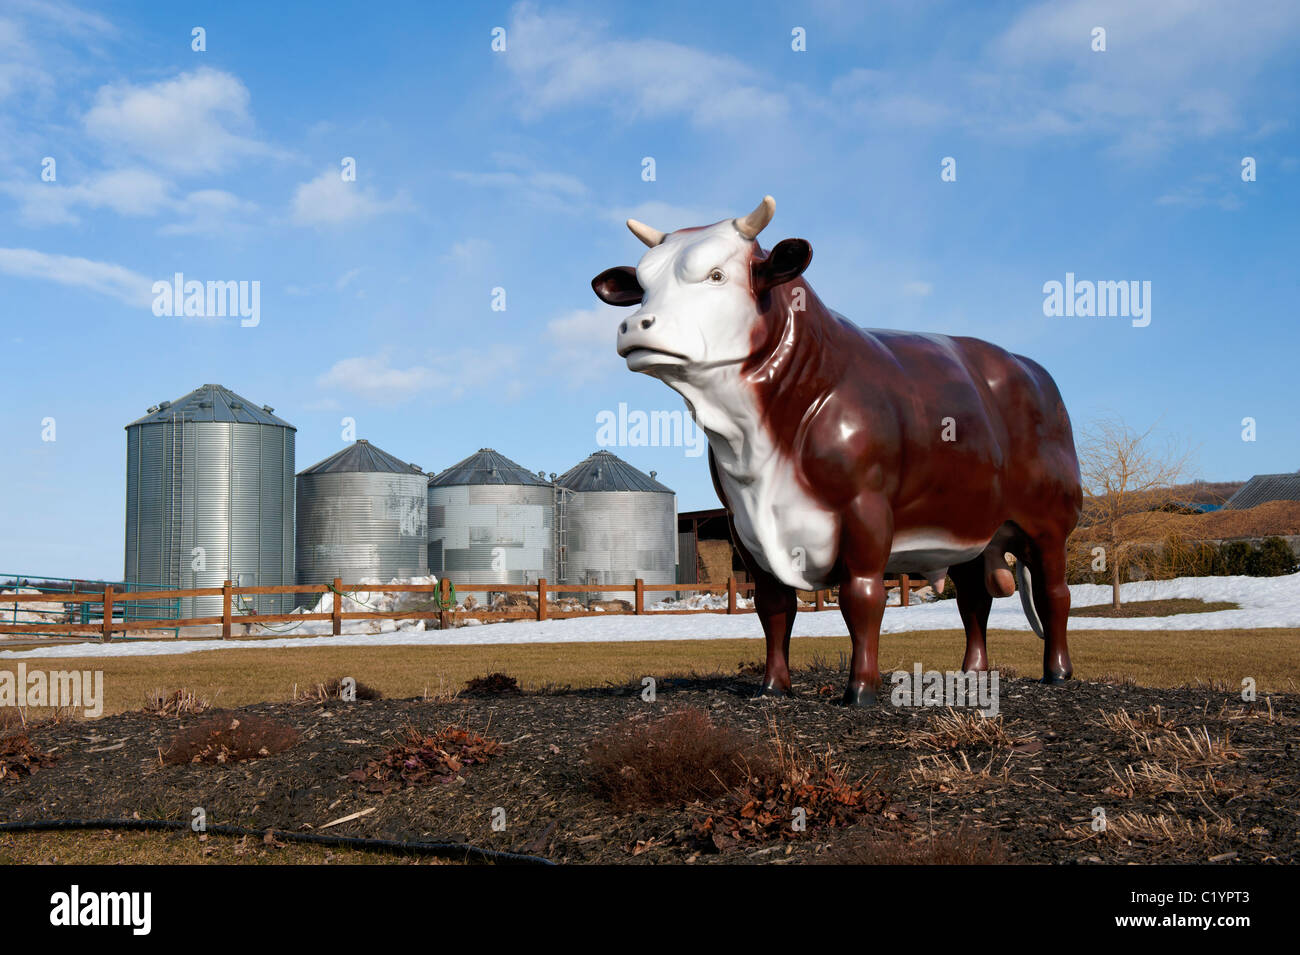 Fake life size bull on the grounds of a cattle breeding farm near St-Augustin, Province of Quebec, Canada. - Stock Image